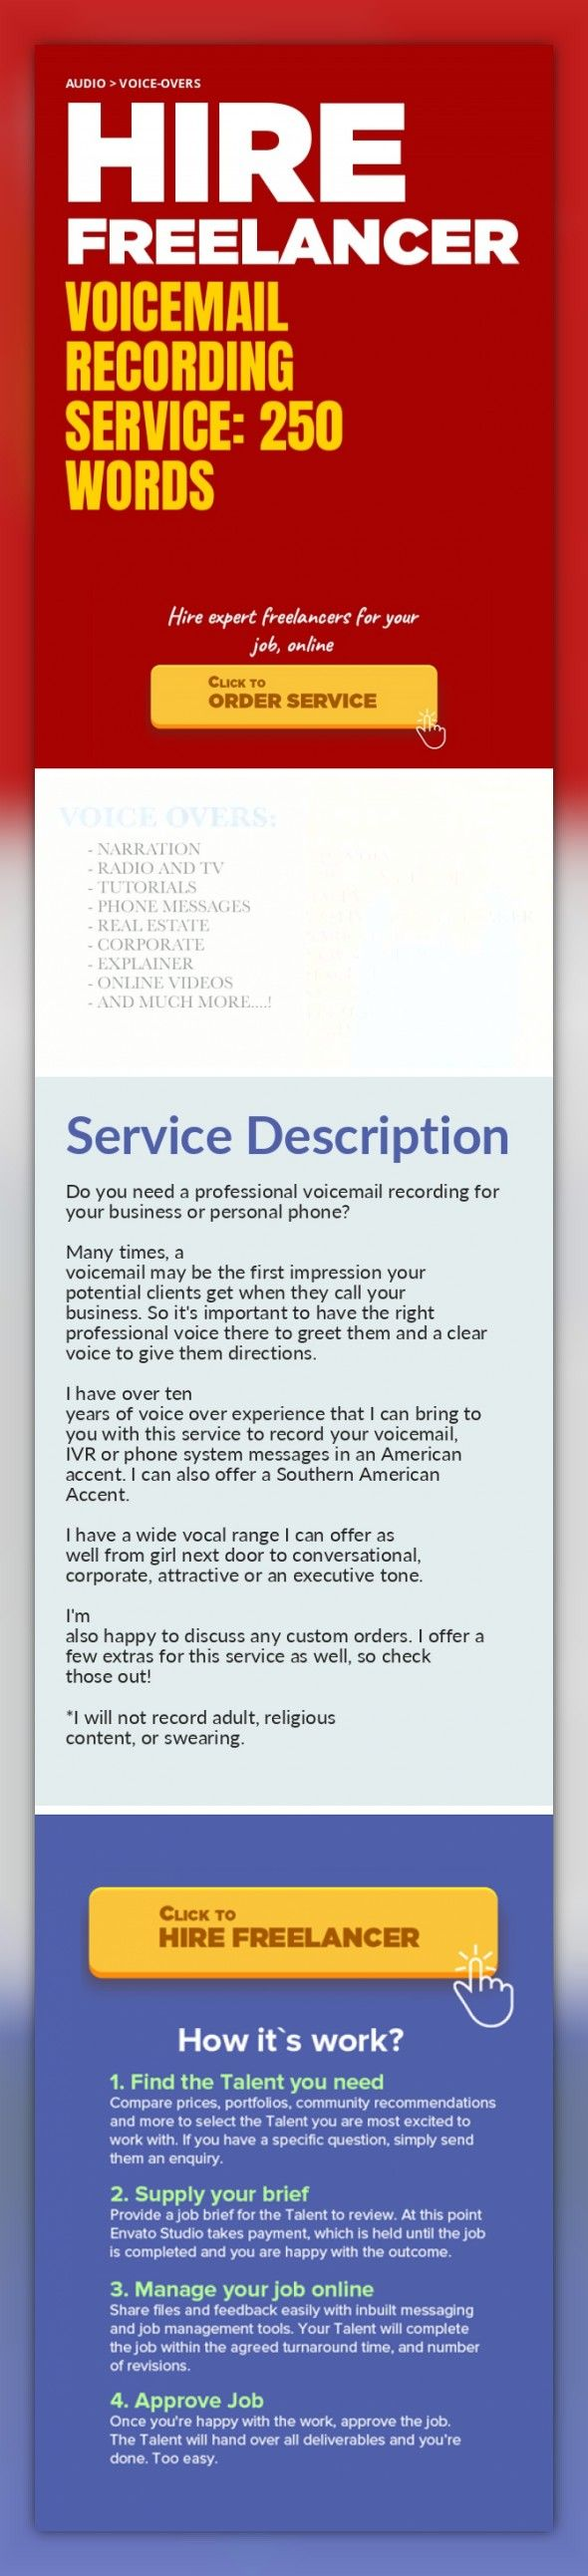 Best Business Voicemail Greetings Images Greetings Card Design Simple